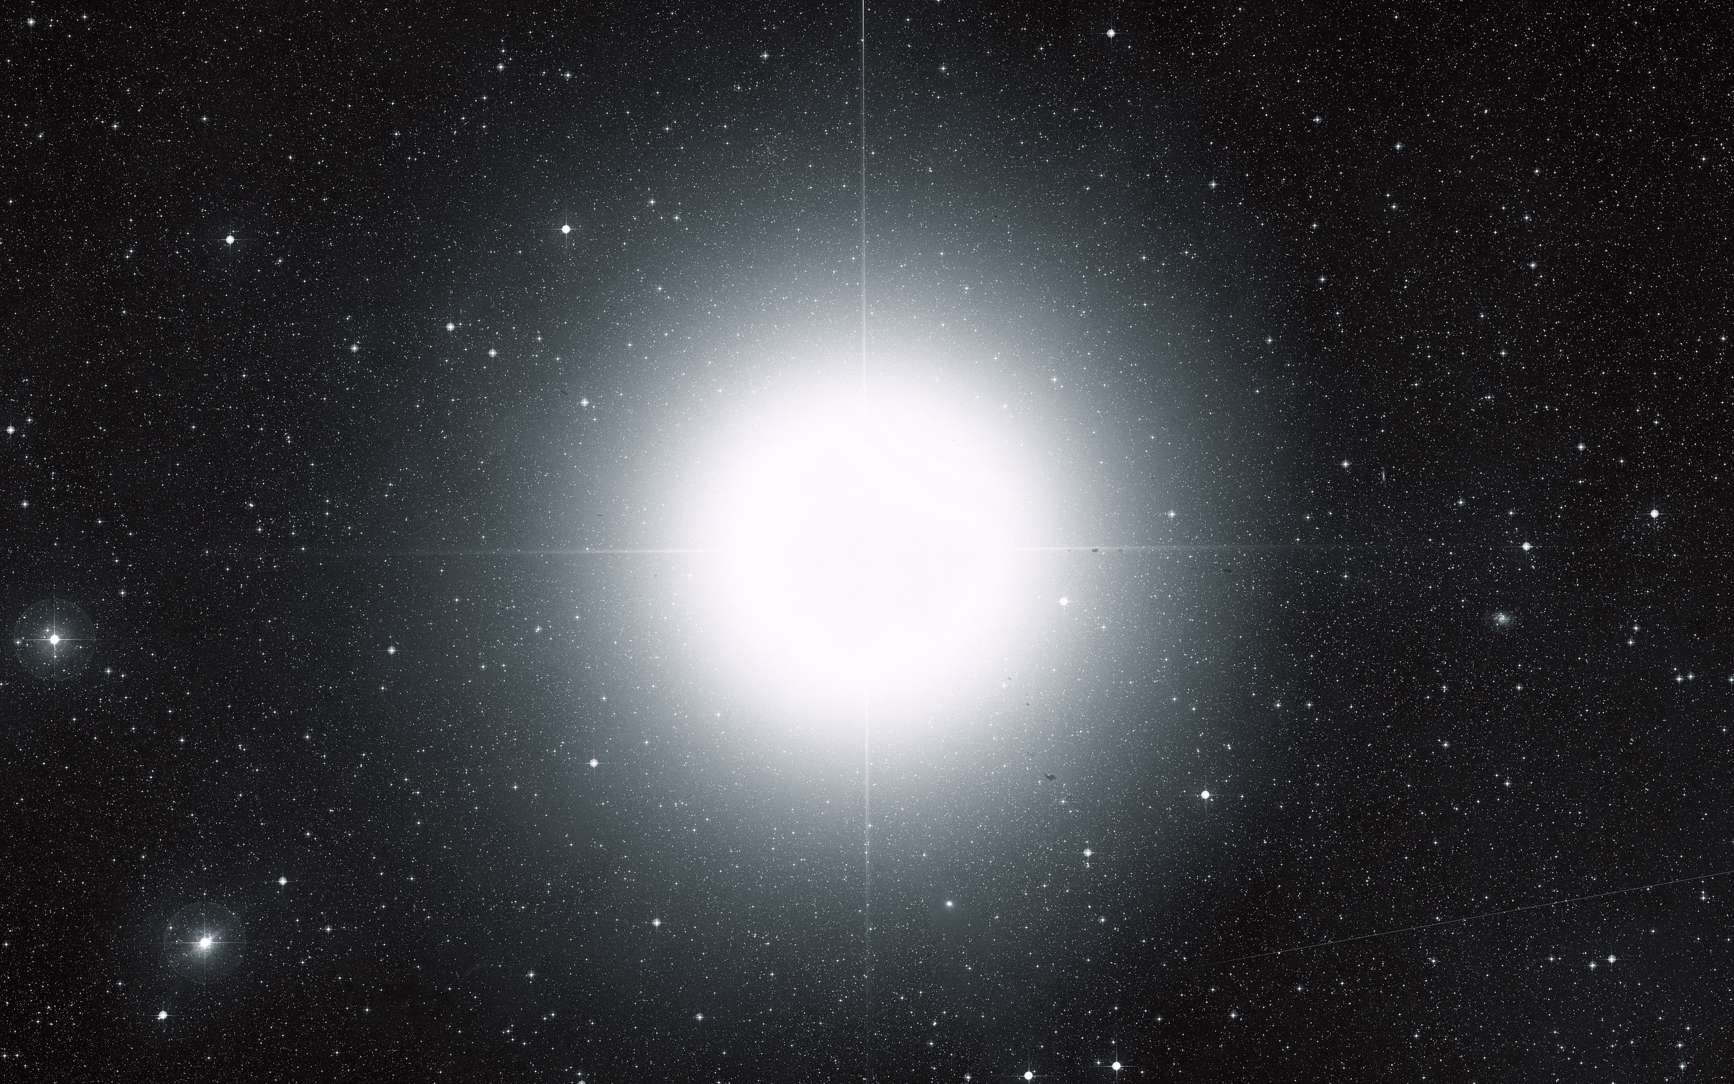 Sirius, l'étoile la plus brillante du ciel terrestre. © ESA, Hubble, Digitized Sky Survey 2, Davide De Martin